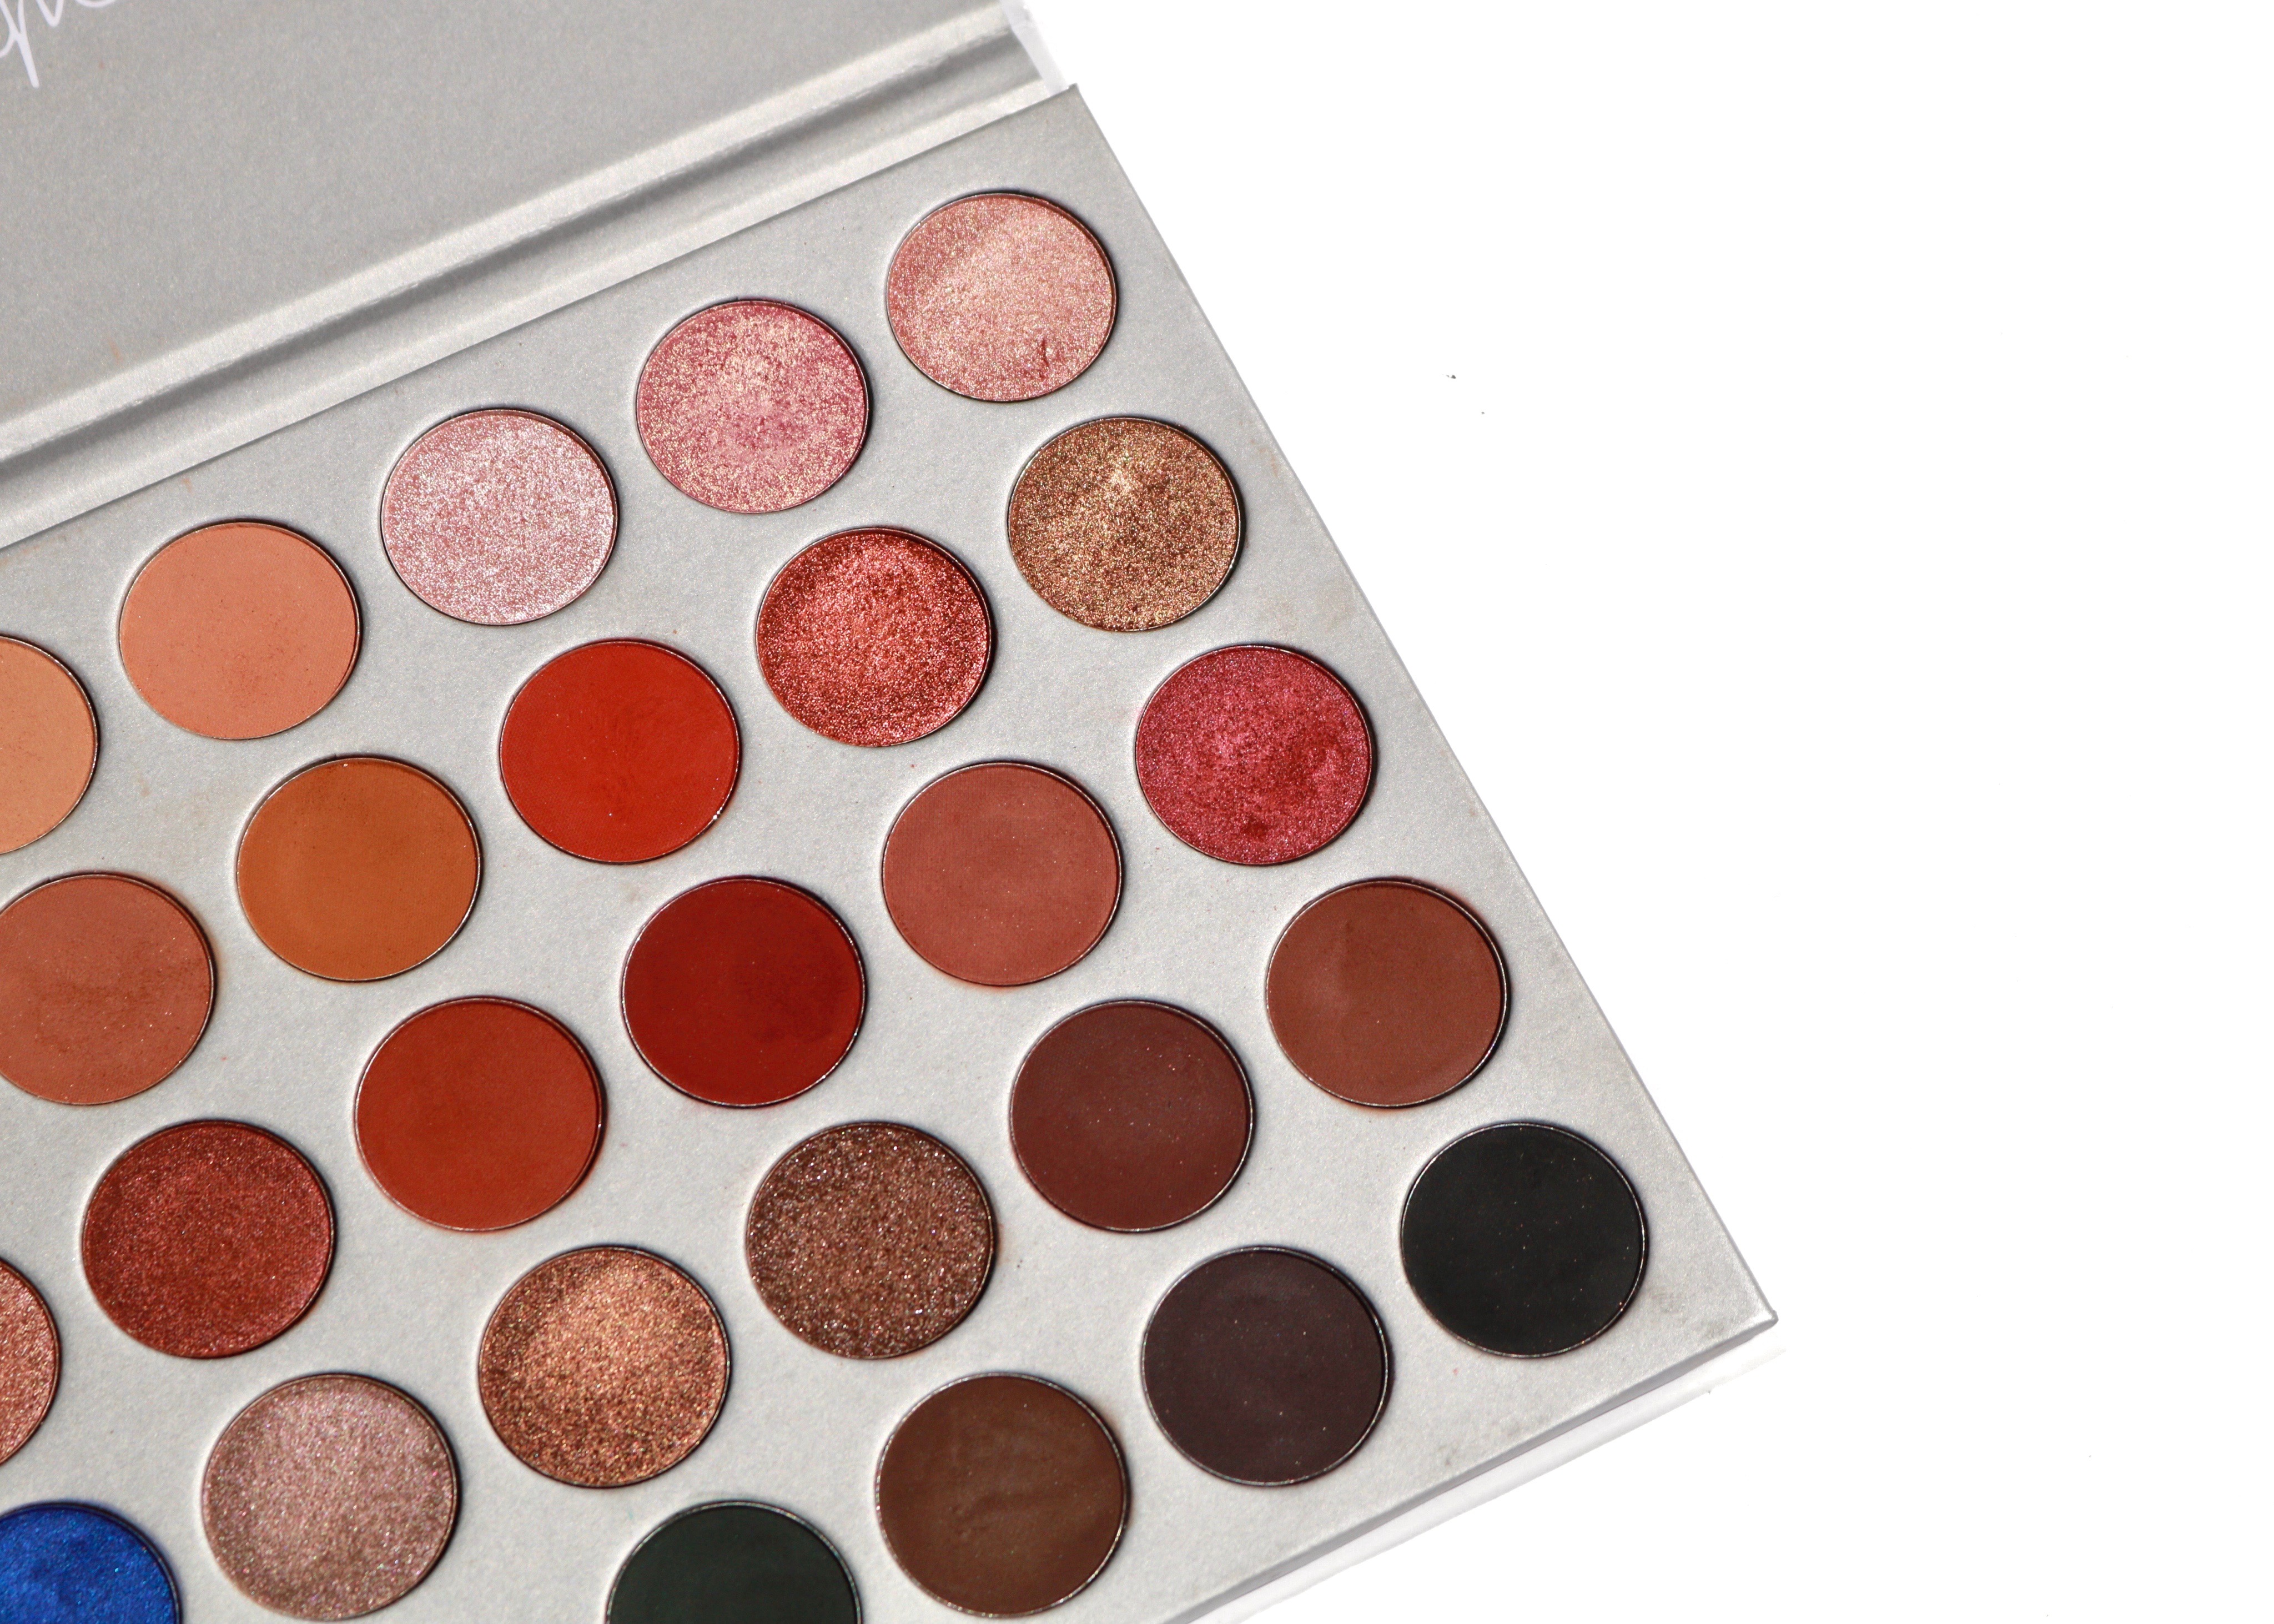 The Jaclyn Hill Eyeshadow Palette Review